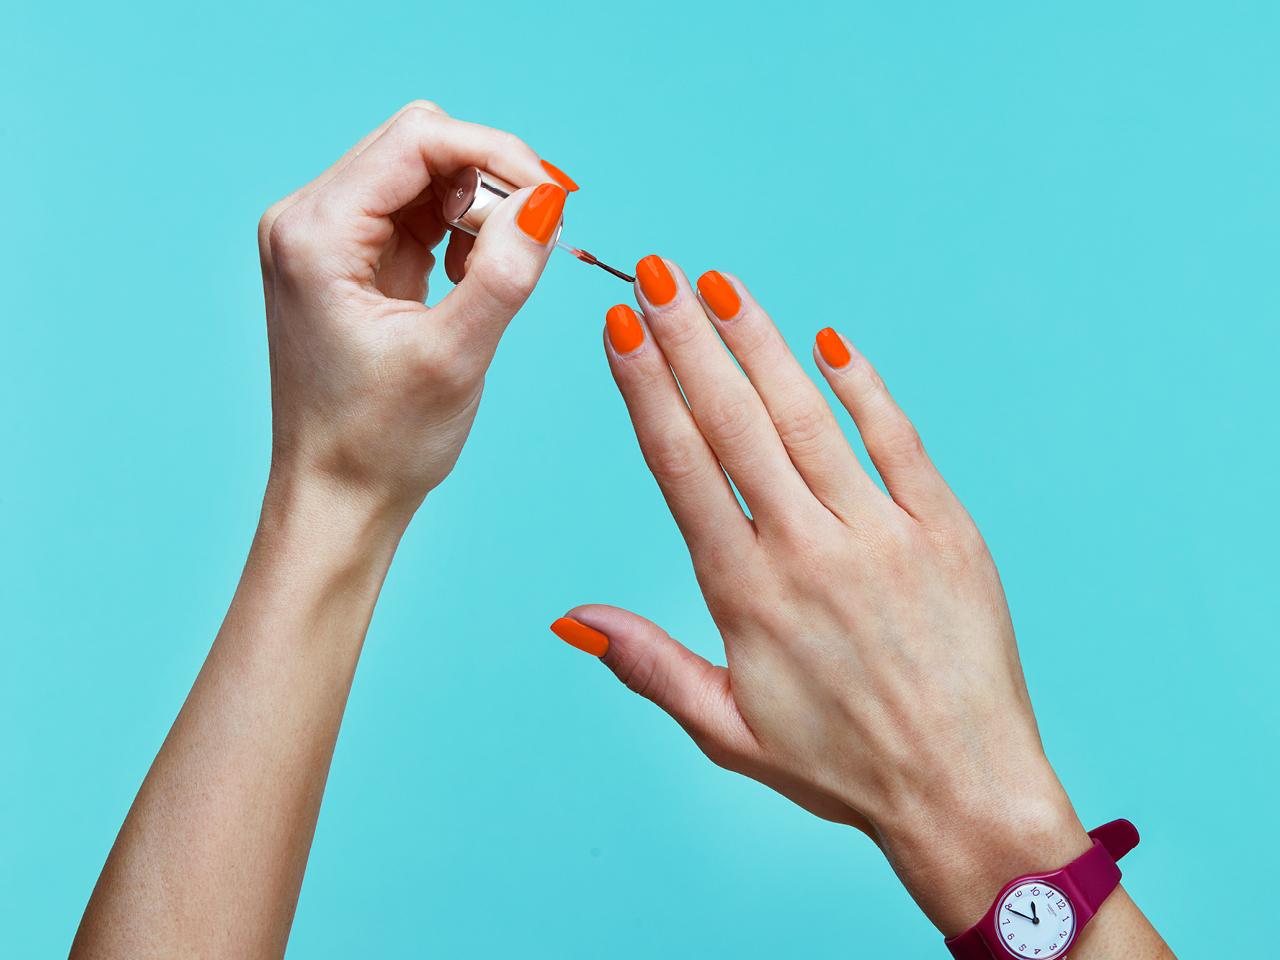 one of the biggest beauty trends for spring is orange nail polish